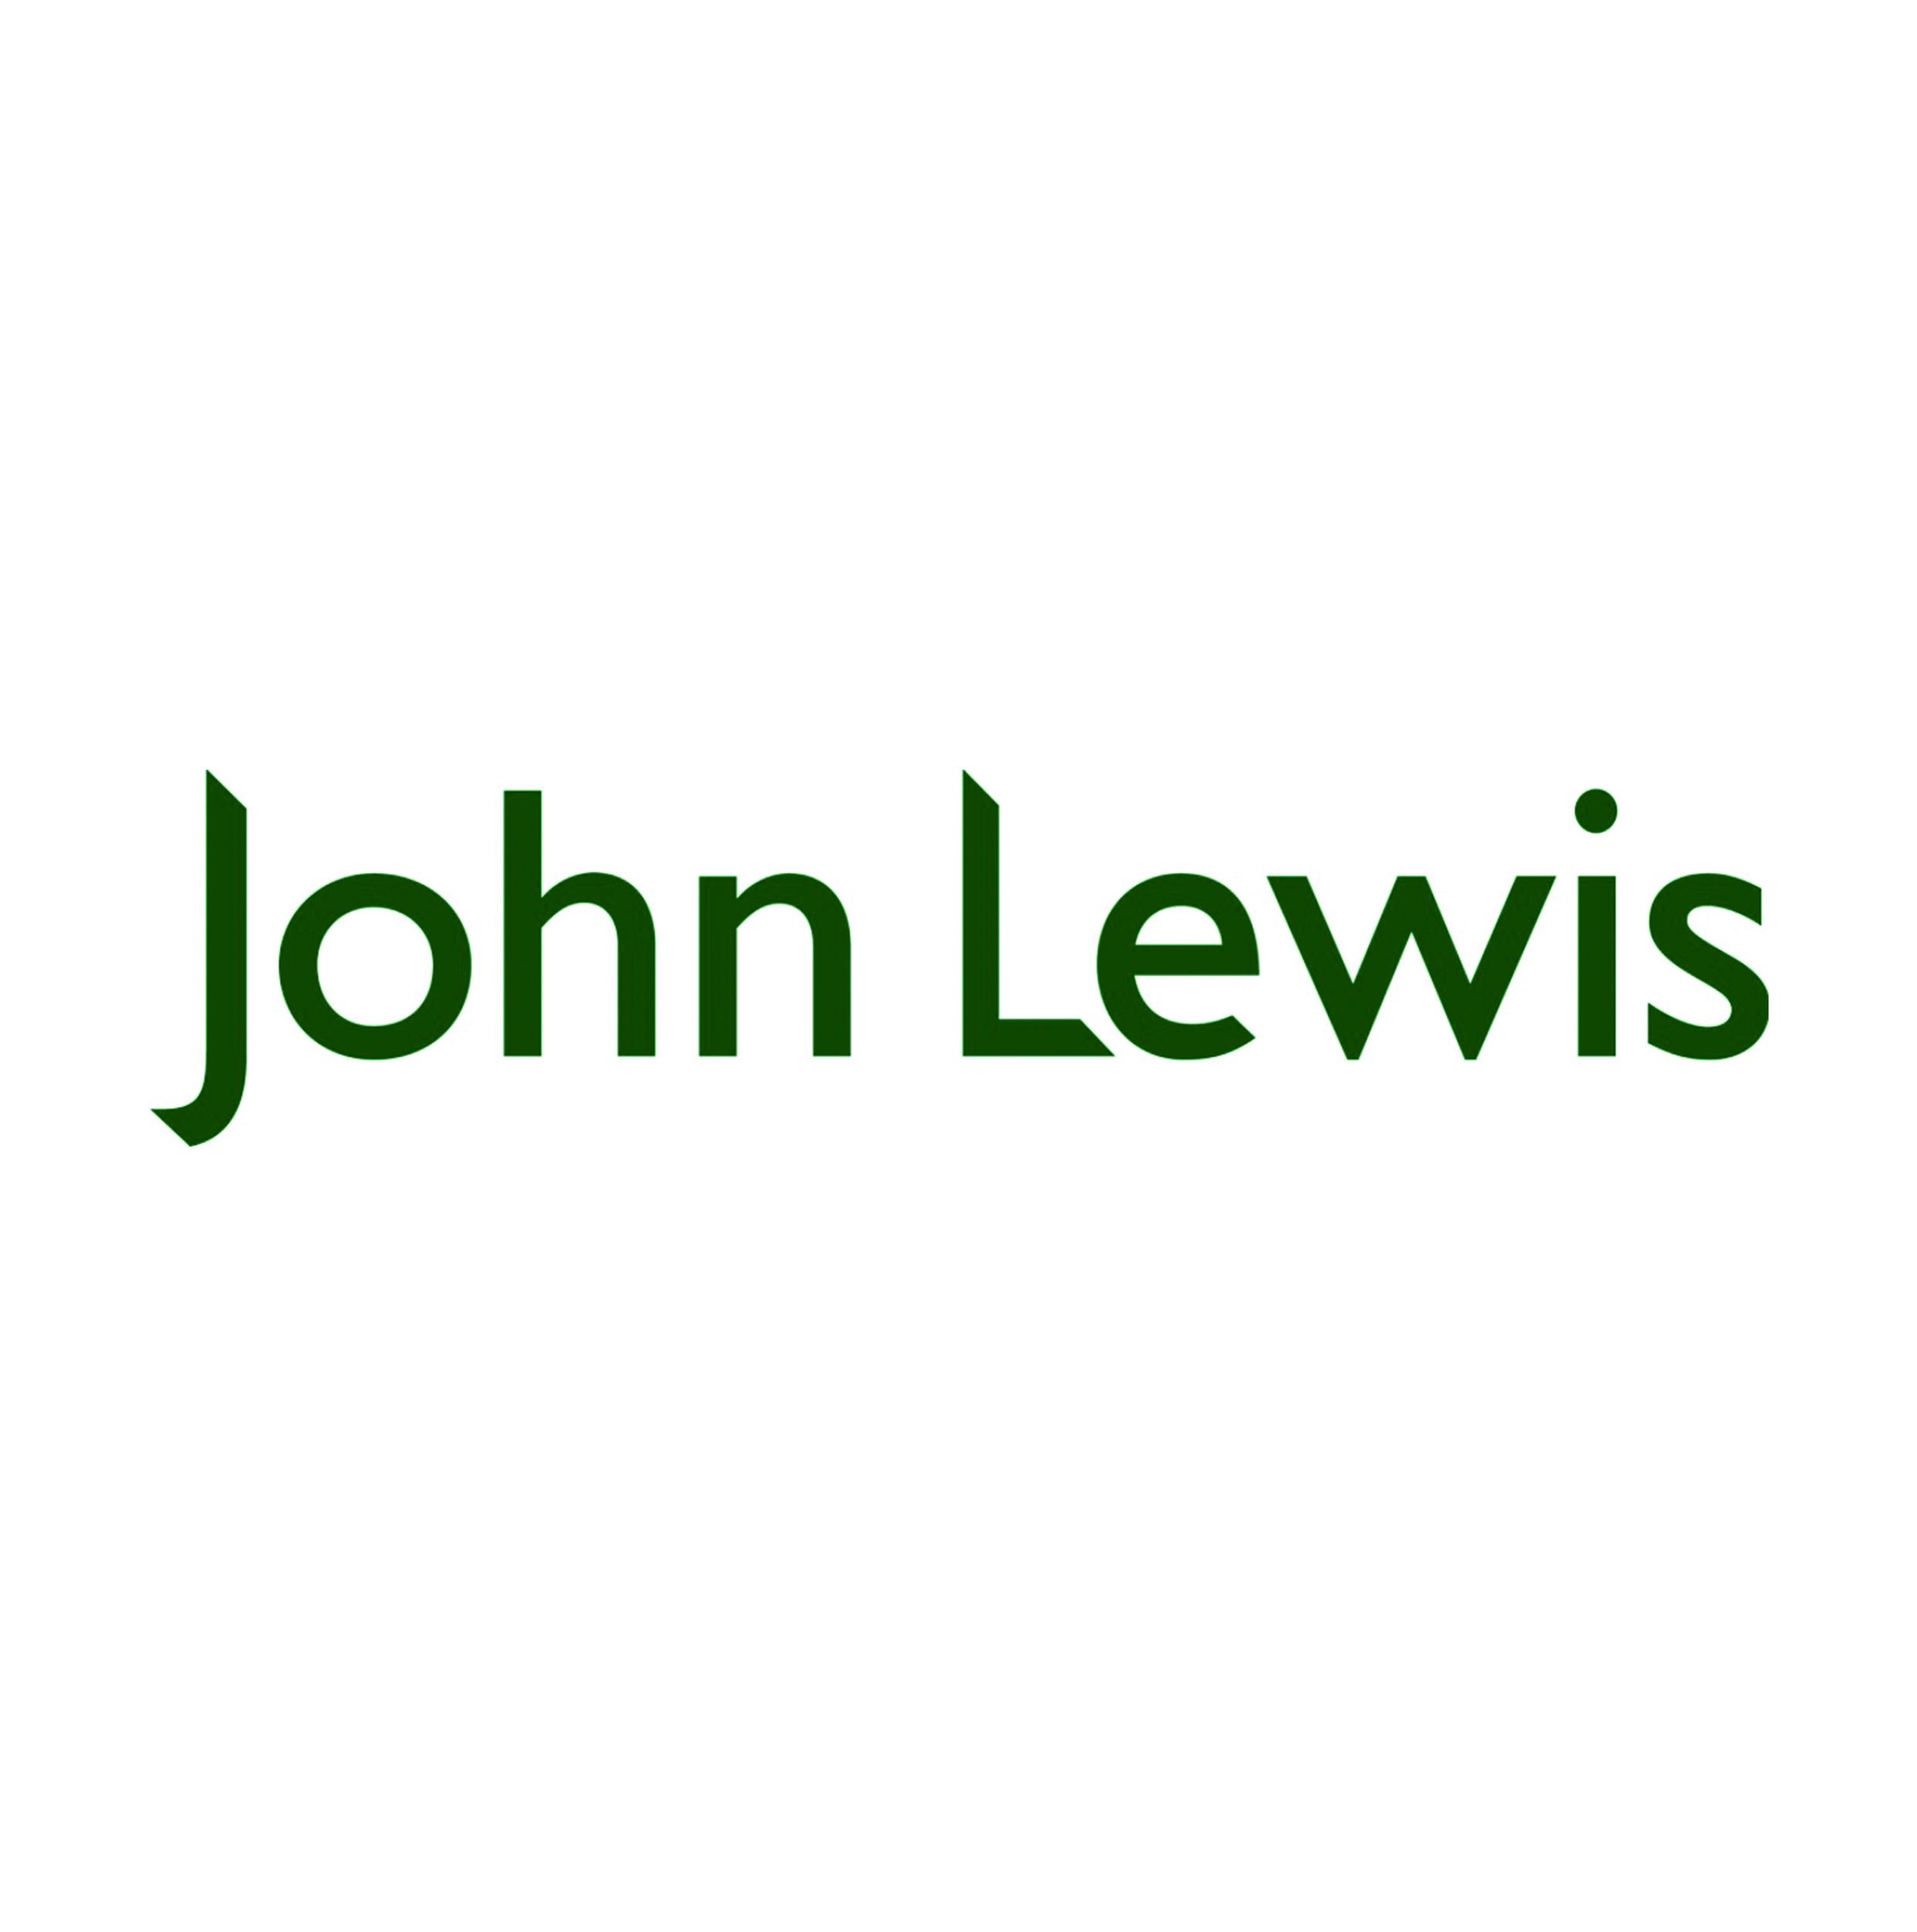 John Lewis resized.jpg